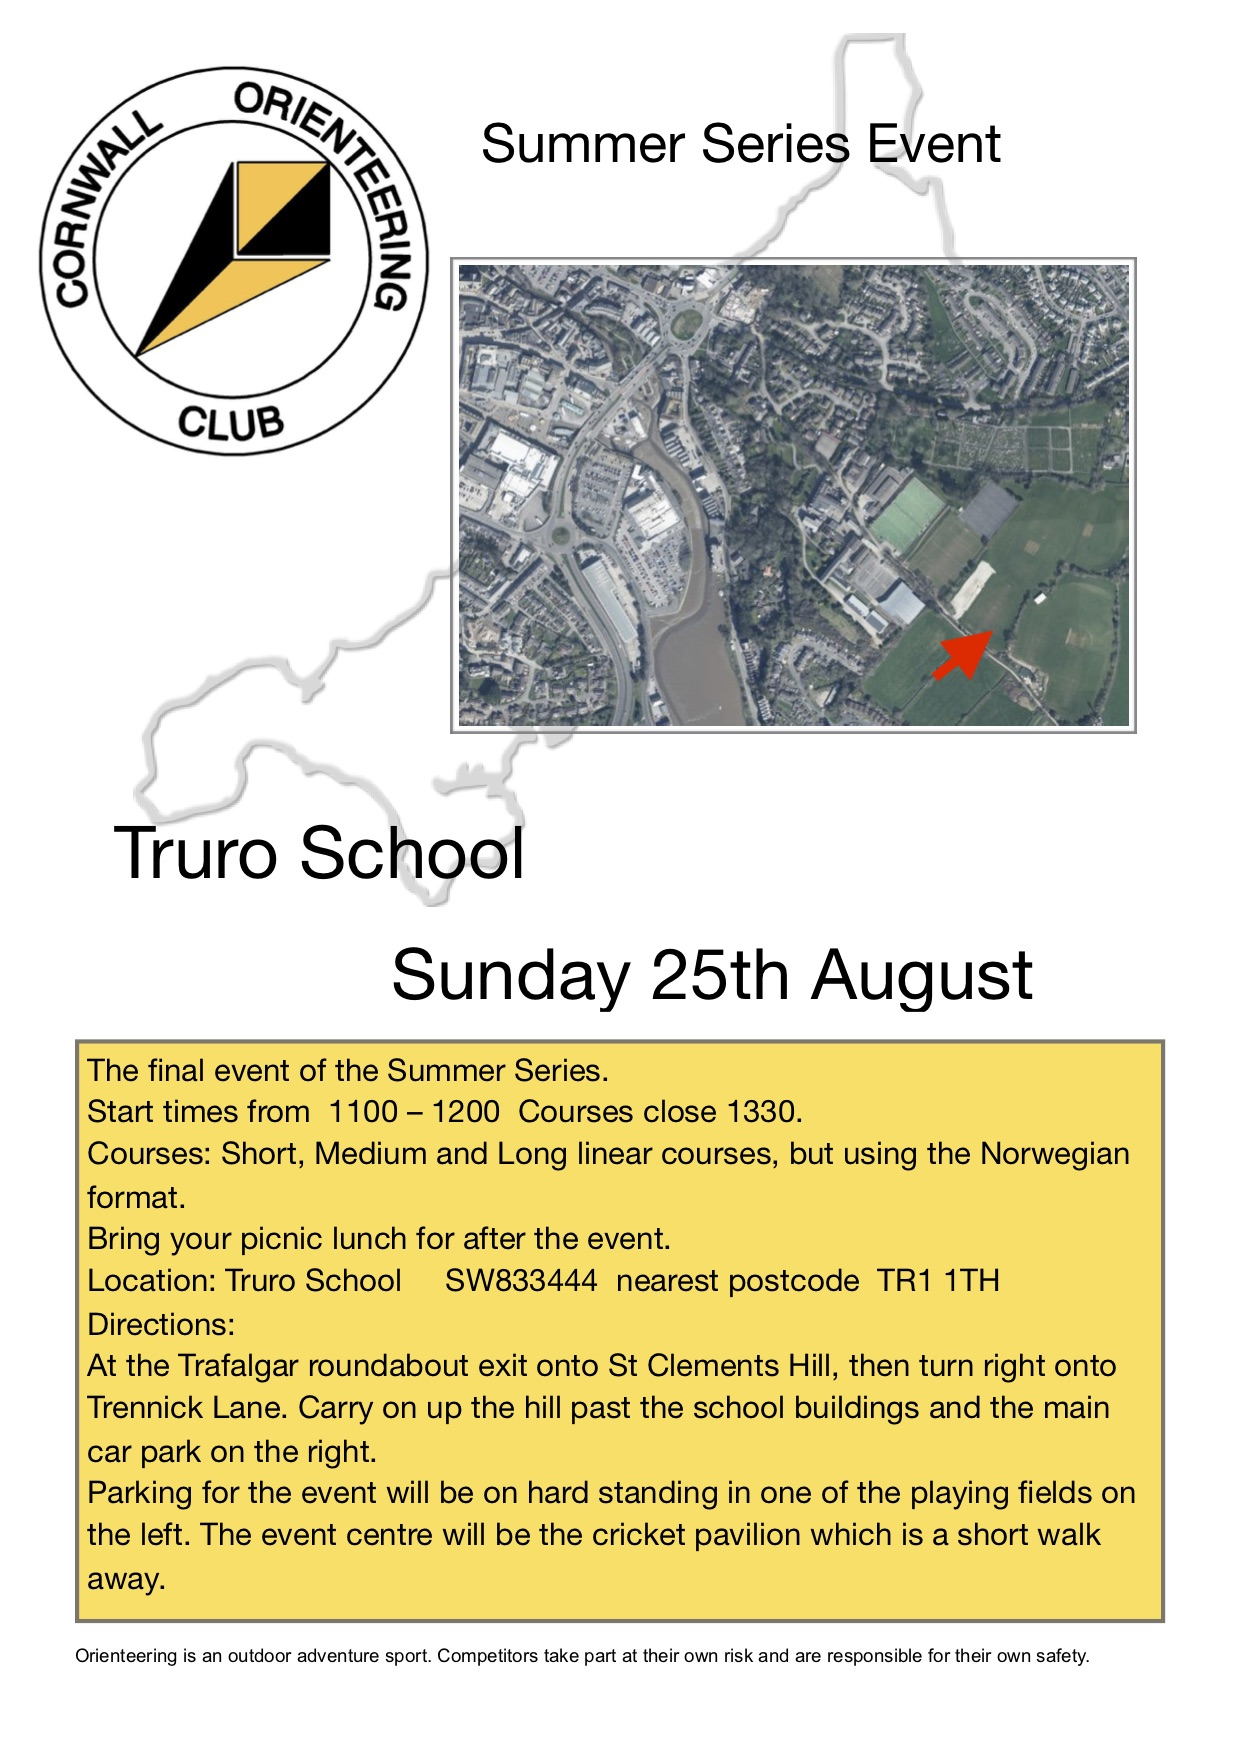 Flyer for Truro School event